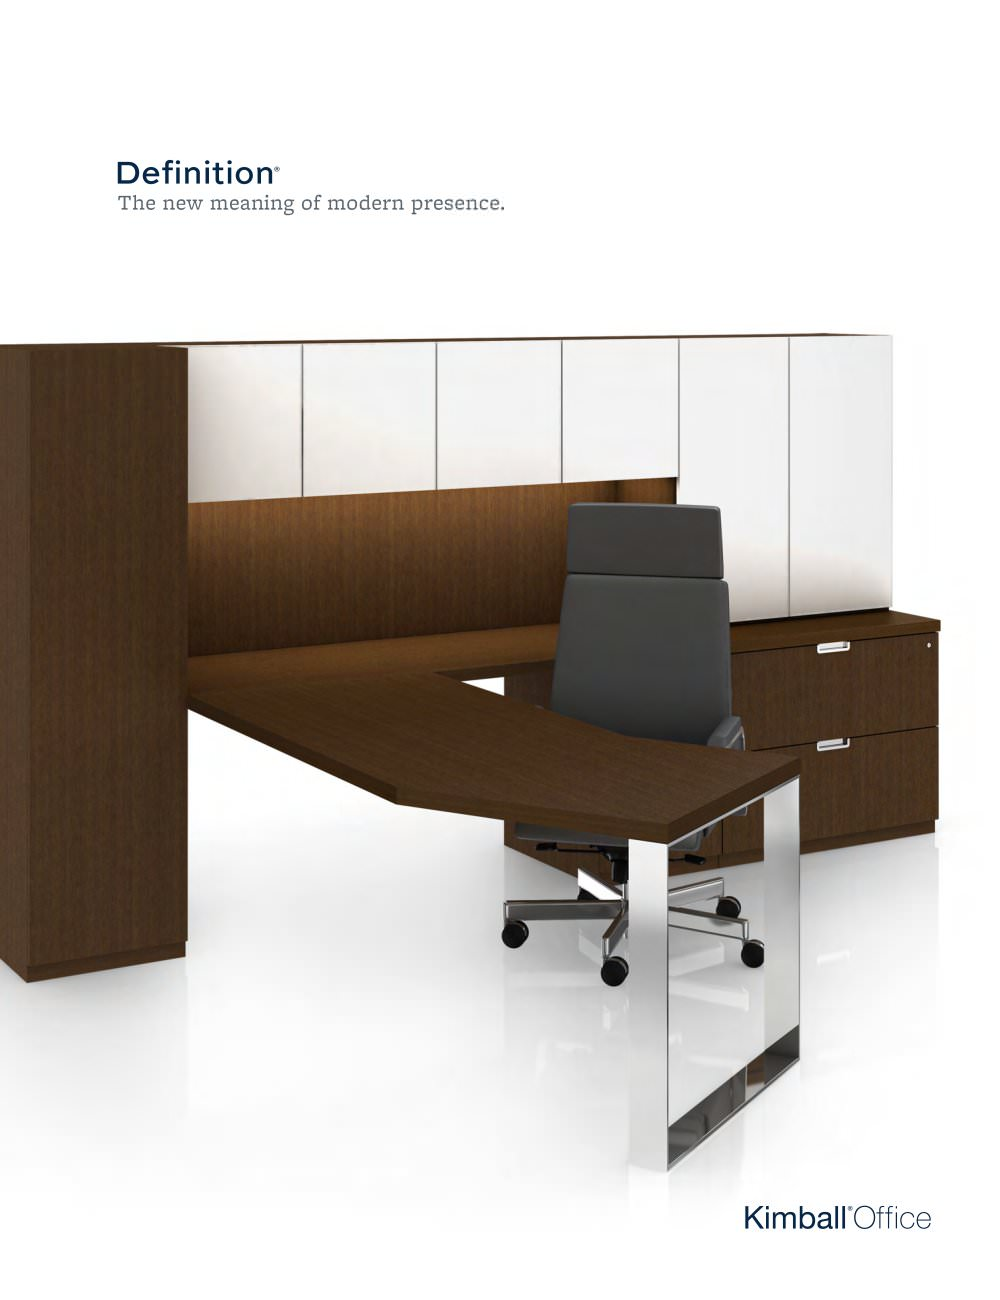 Definition kimball office pdf catalogues documentation brochures definition 1 11 pages malvernweather Gallery